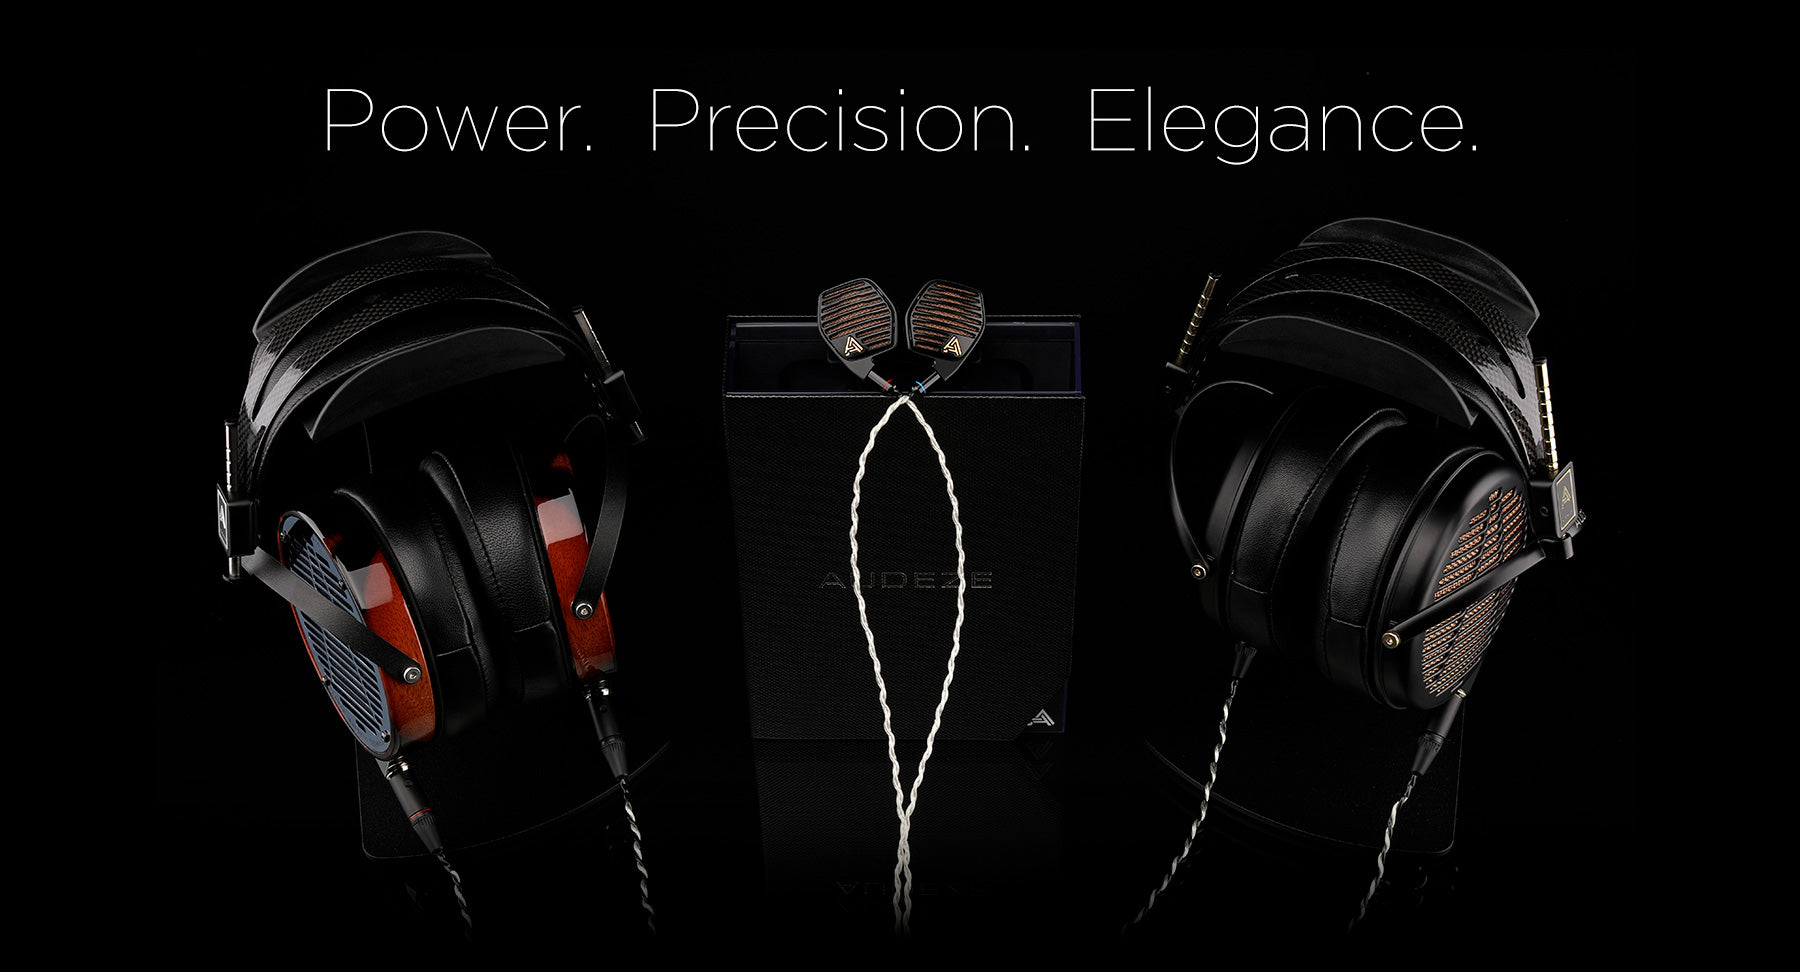 Power Precision Elegance